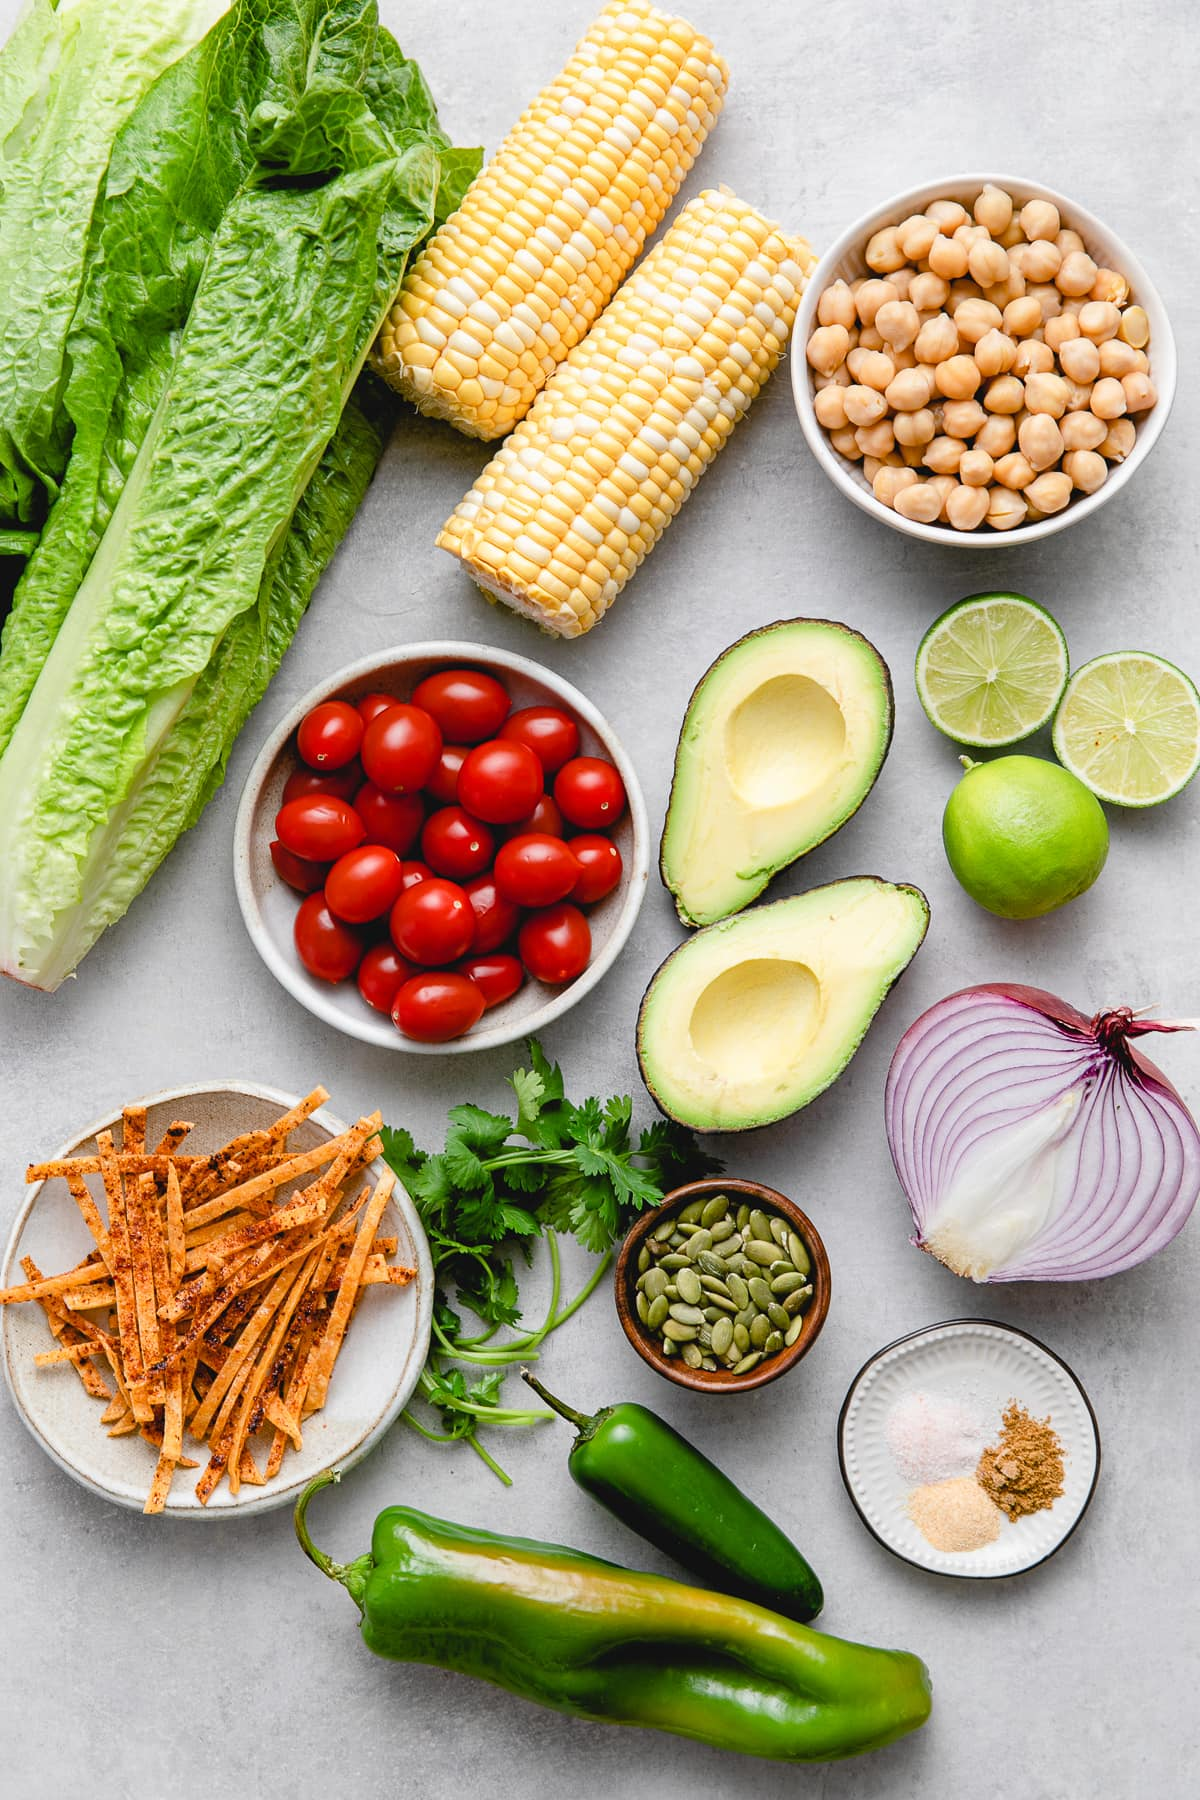 top down view of ingredients used to make southwest chickpea salad with avocado dressing.